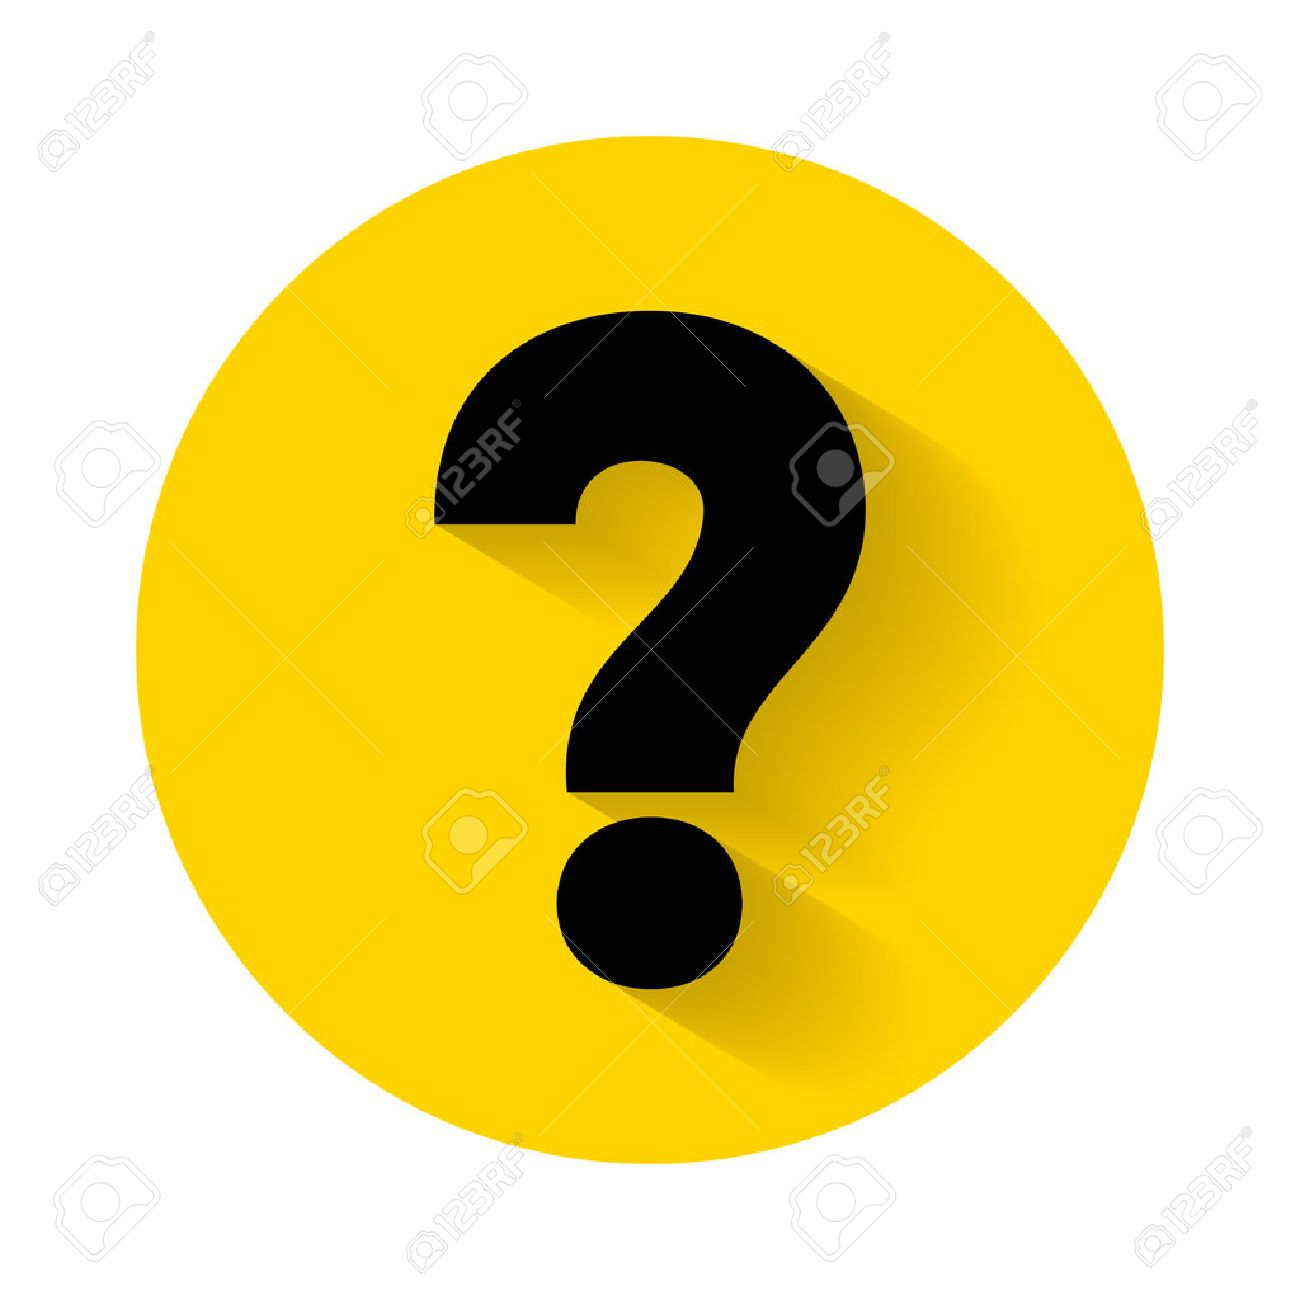 Question mark with shadow isolated on yellow background - 55087585